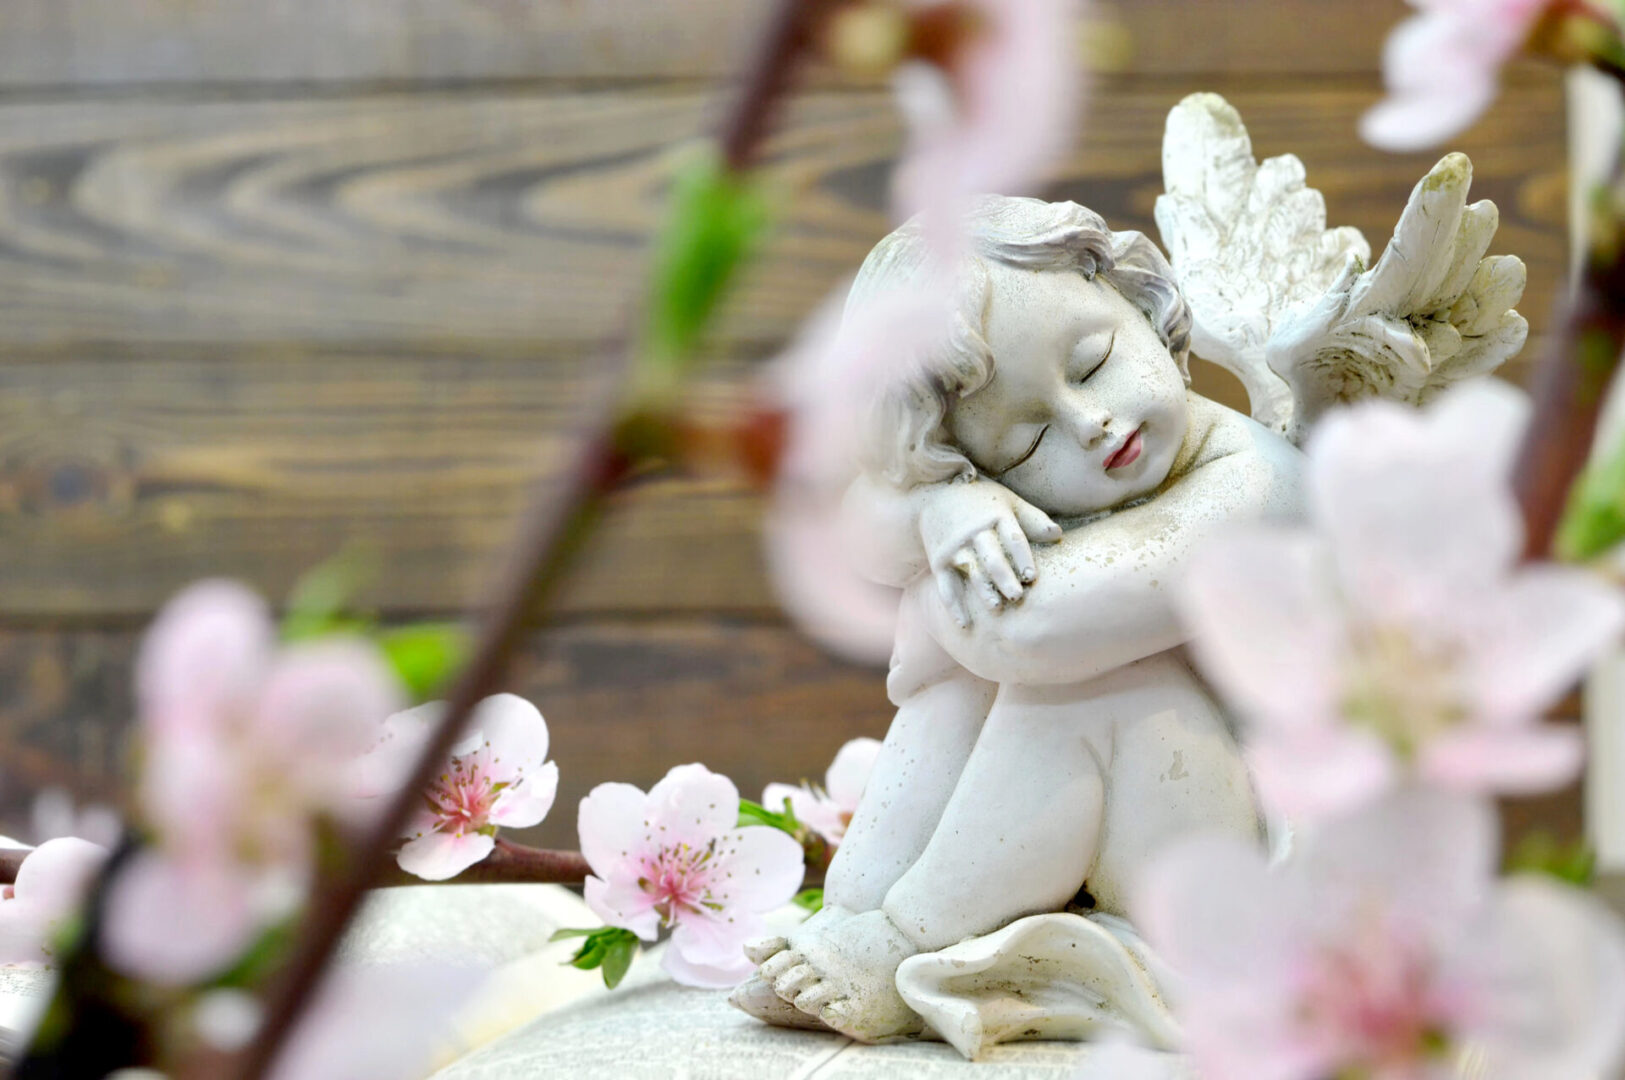 Angel and spring flowers